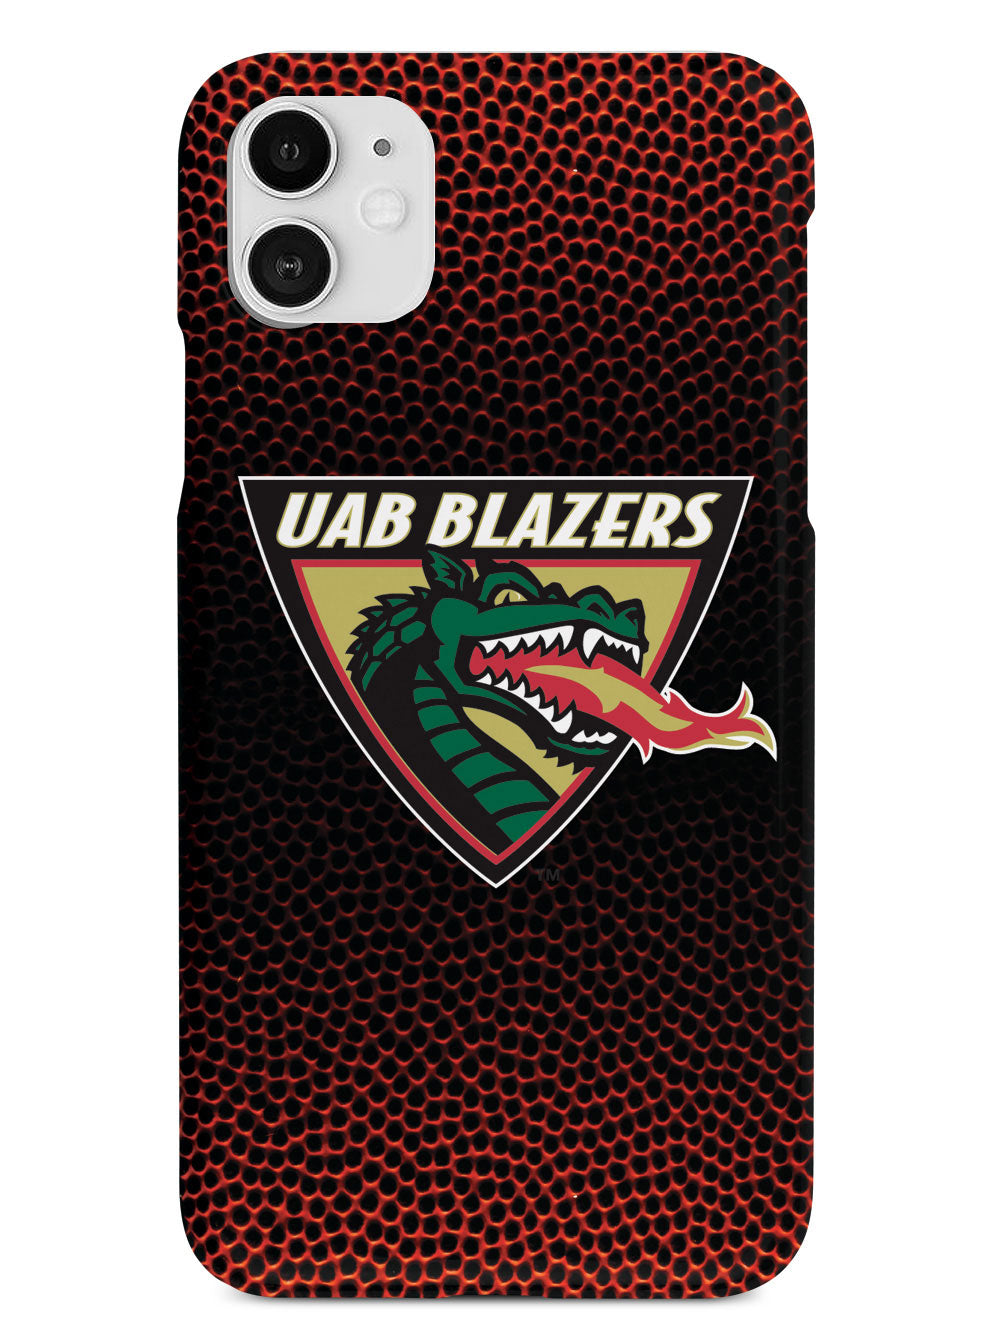 UAB Blazers - Textured Basketball Case